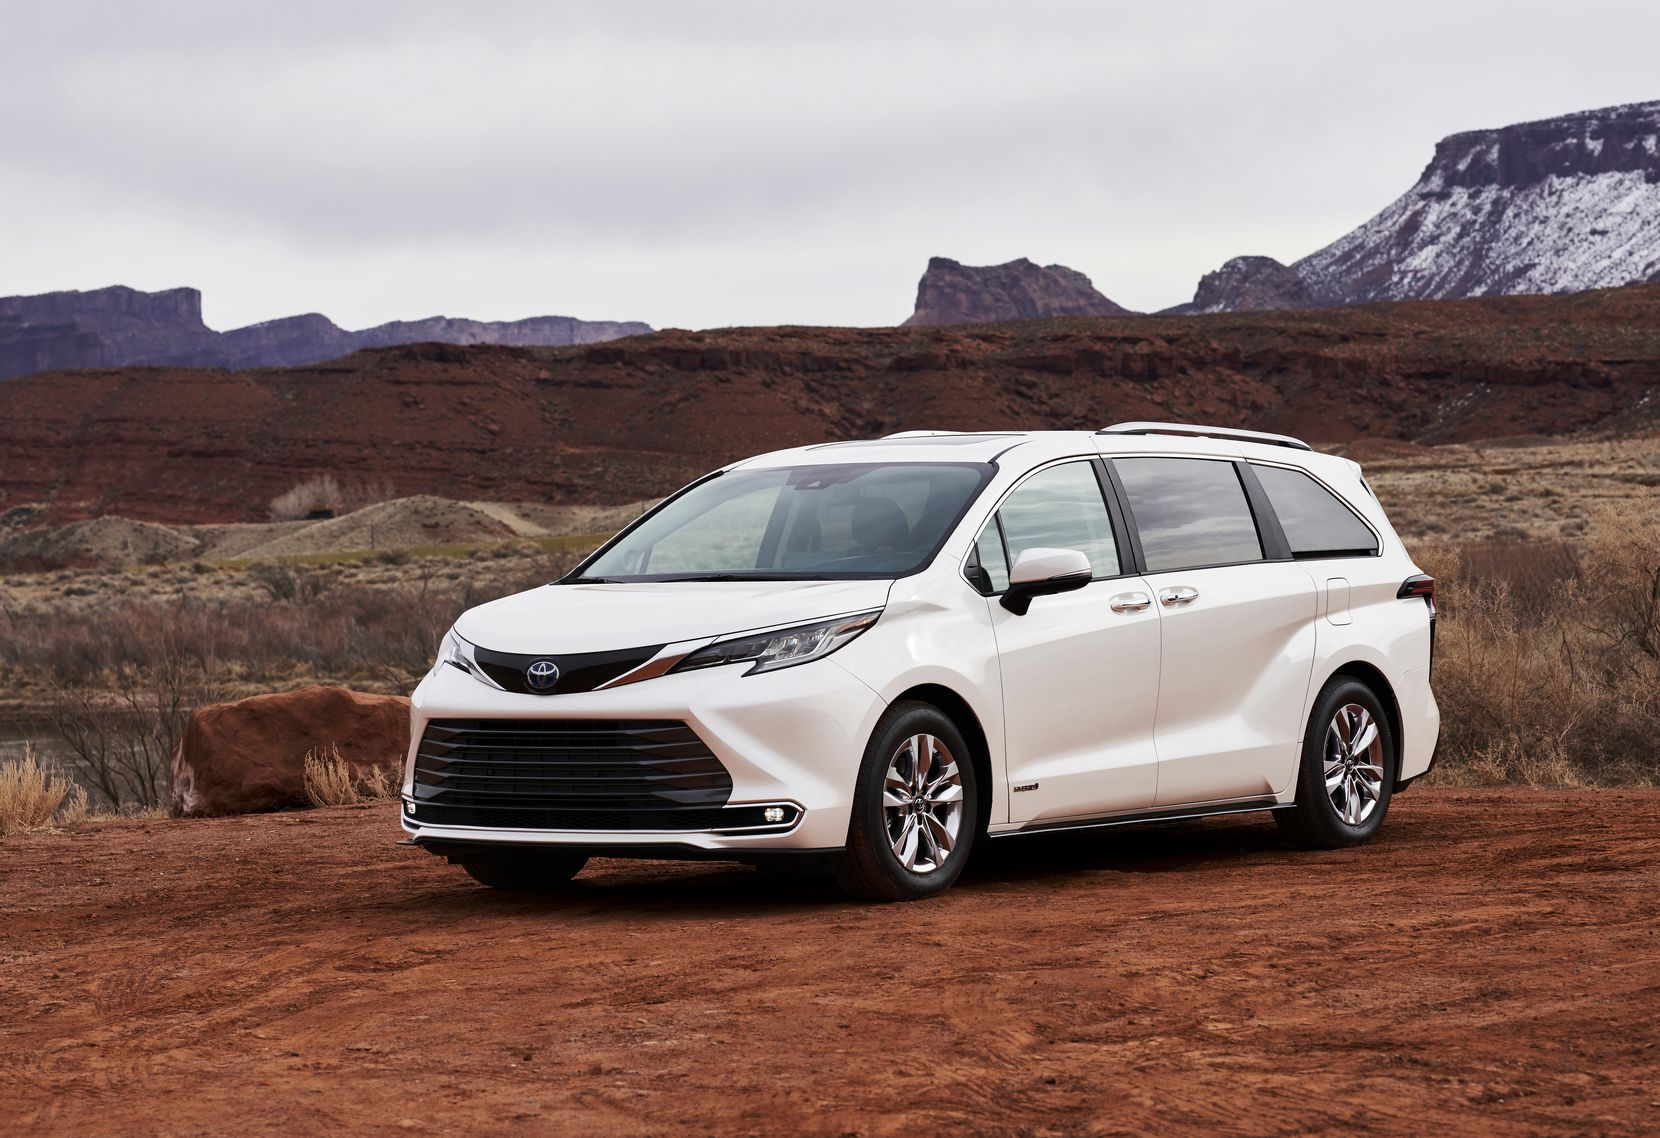 With built-in Wi-Fi, Apple CarPlay compatibility, dynamic navigation and much more, the Toyota Sienna is loaded with technology that once was only a vision of the future.